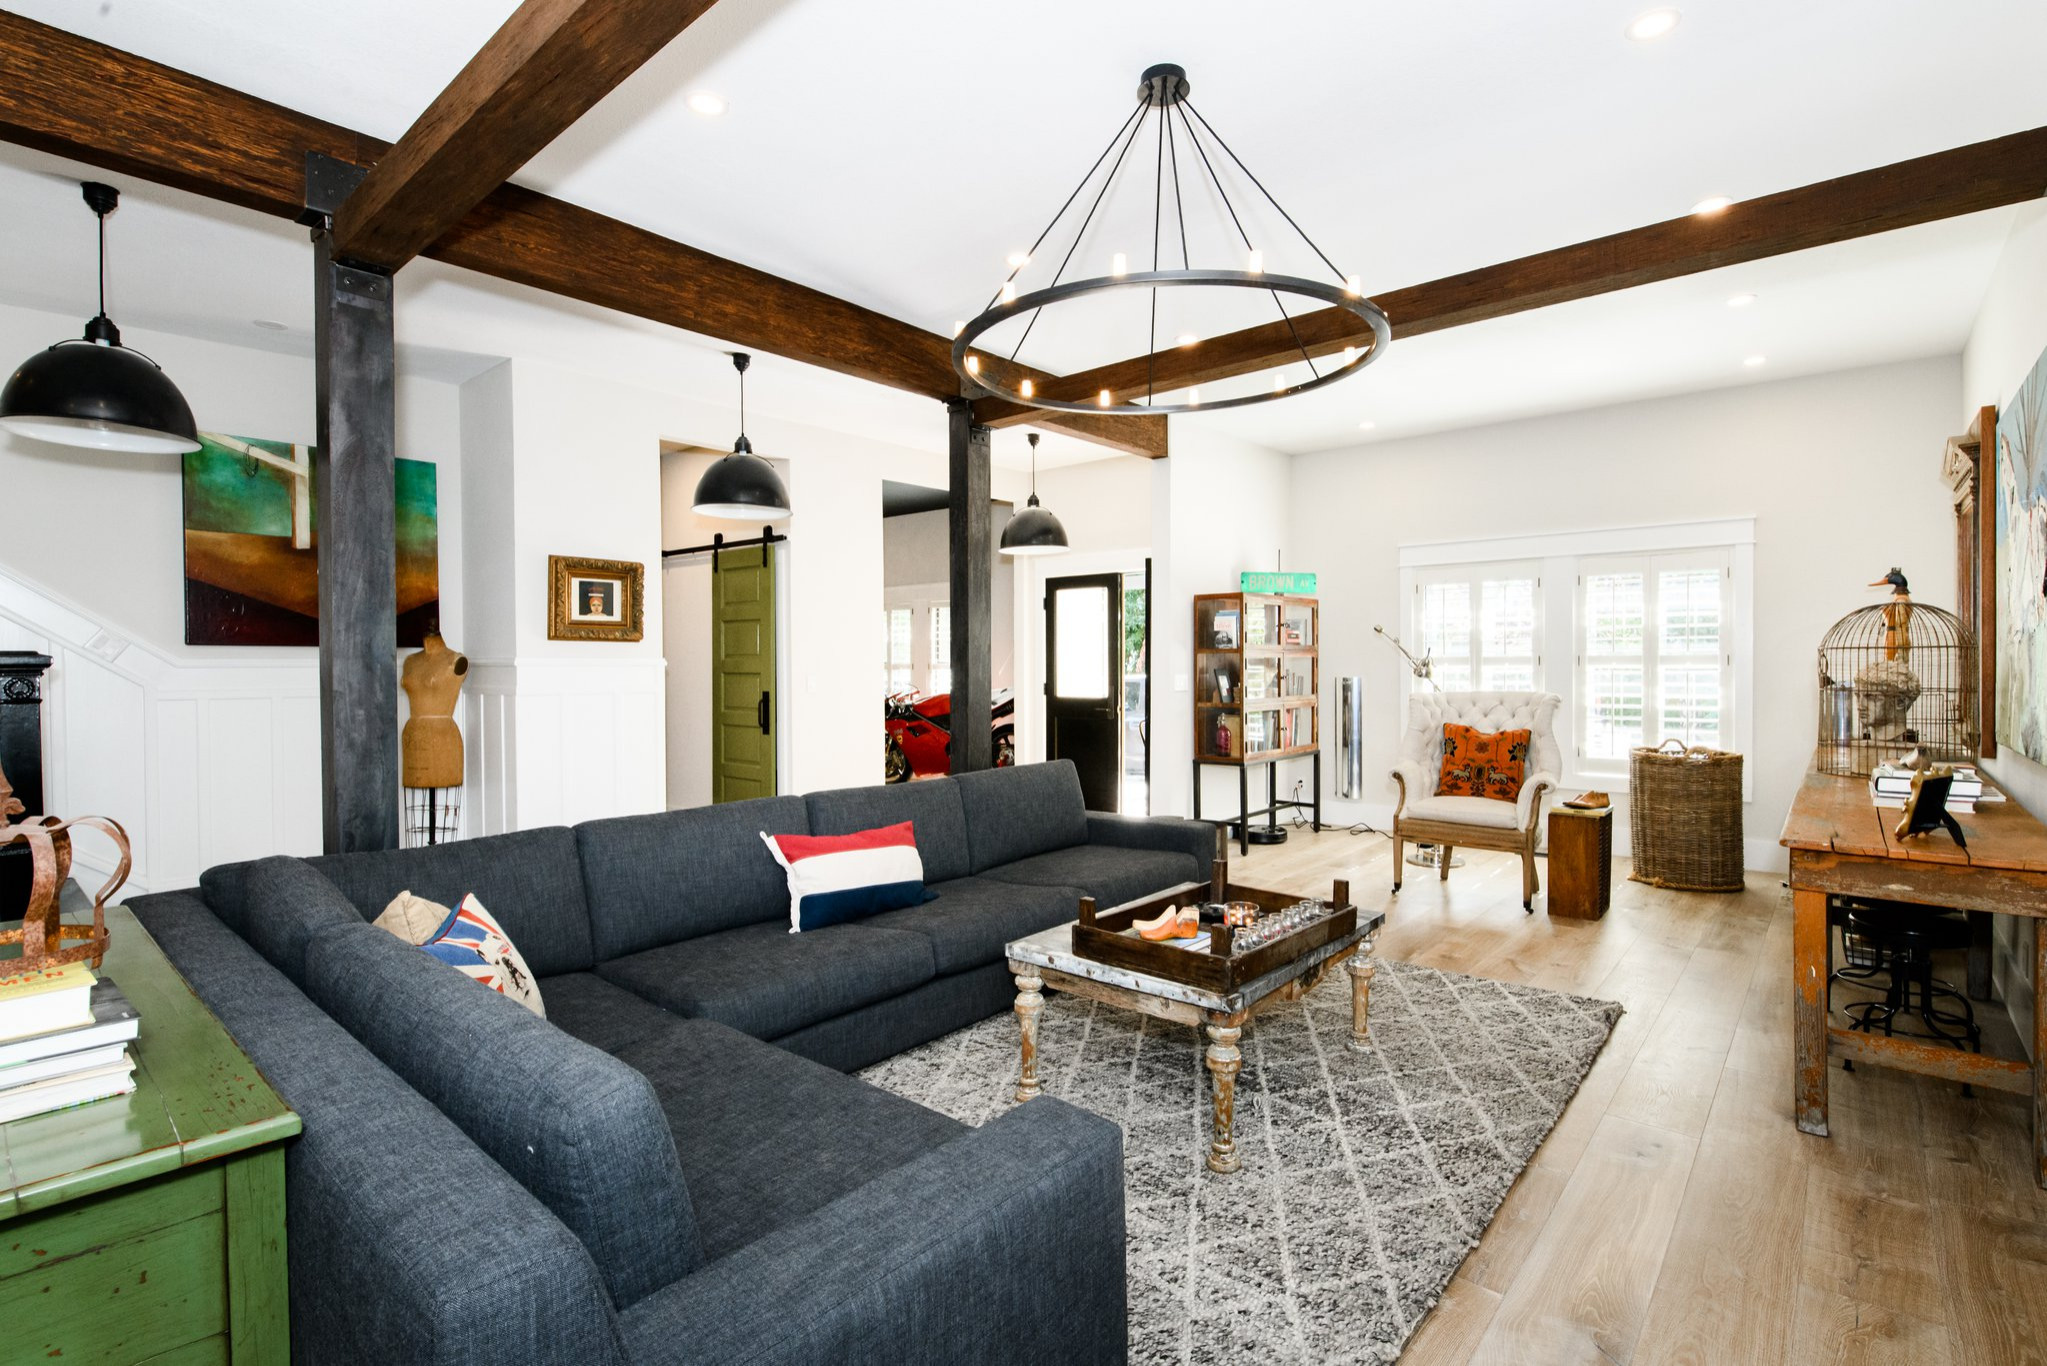 75 Beautiful Living Room With No Fireplace Pictures Ideas March 2021 Houzz